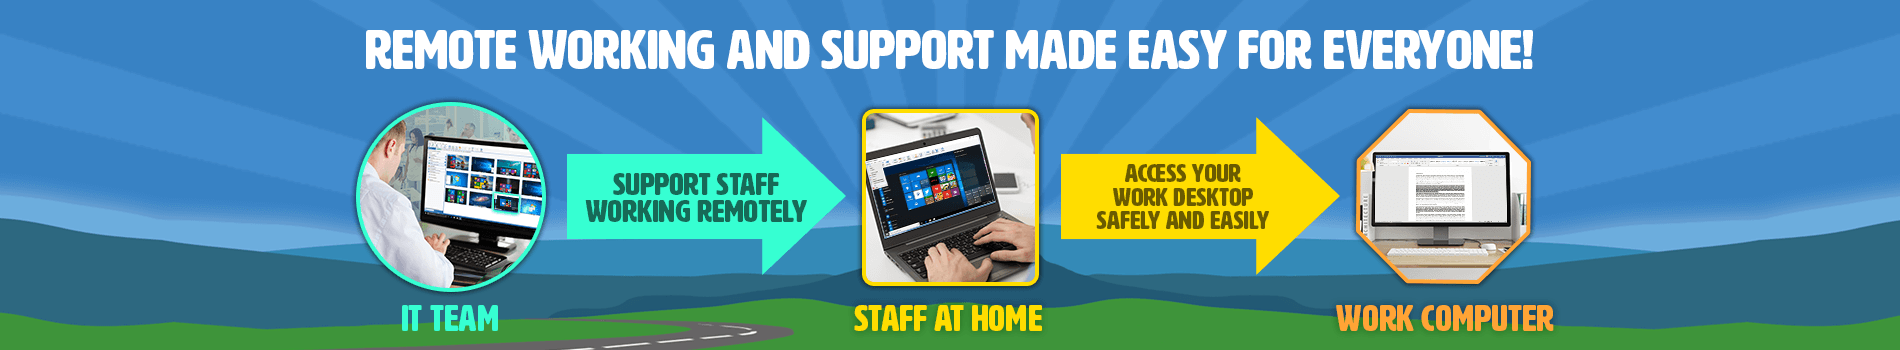 Remote working and support